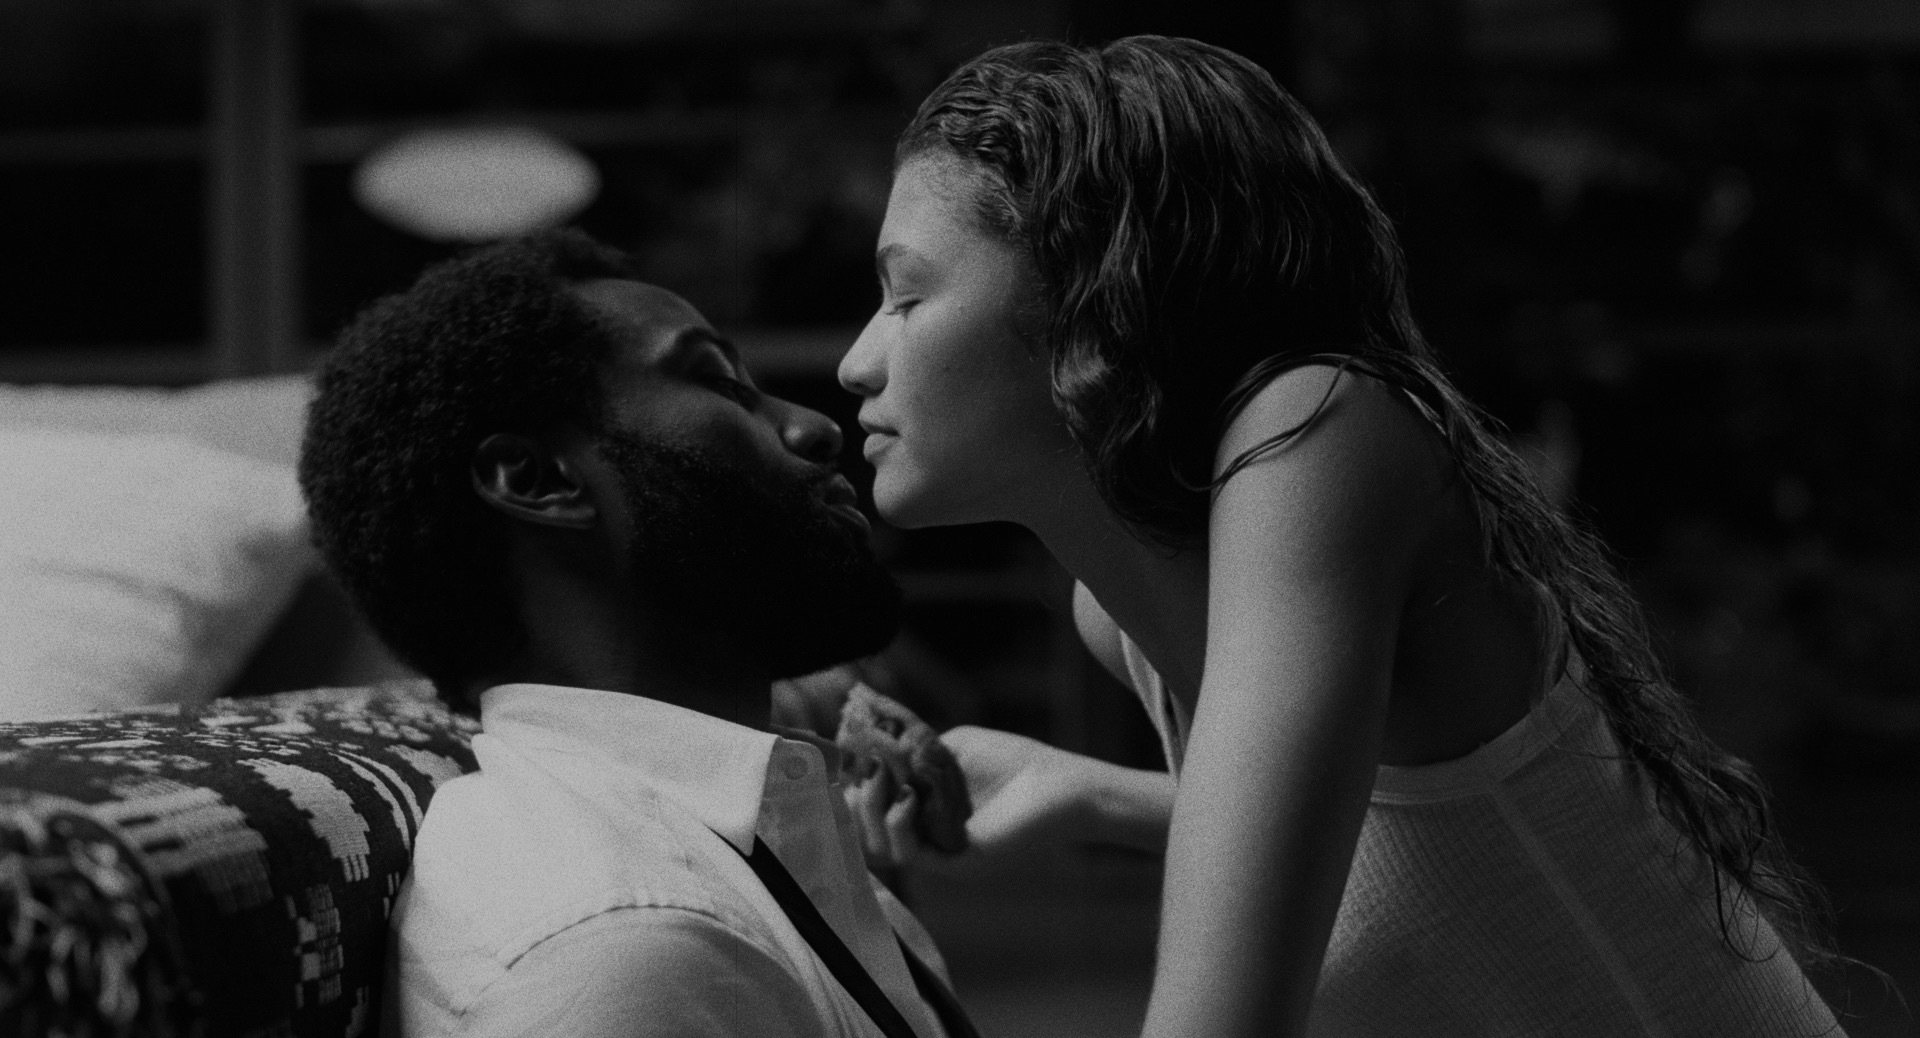 Black and White image of Marie almost kissing Malcom